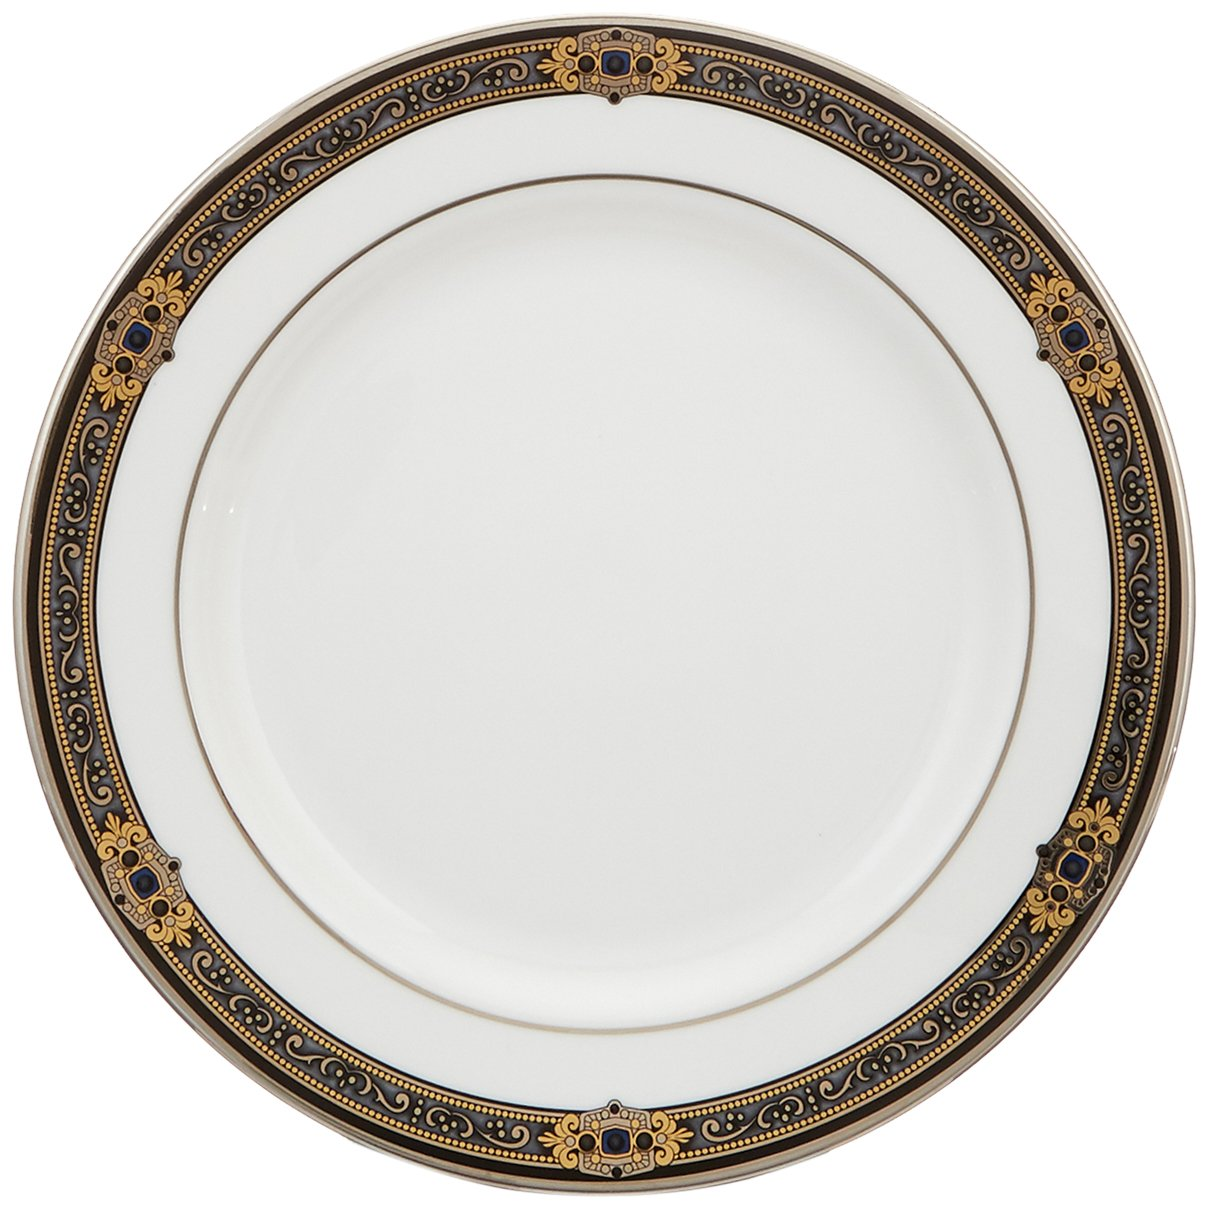 Lenox Vintage Jewel Platinum-Banded Bone China 5-Piece Place Setting, Service for 1 by Lenox (Image #5)